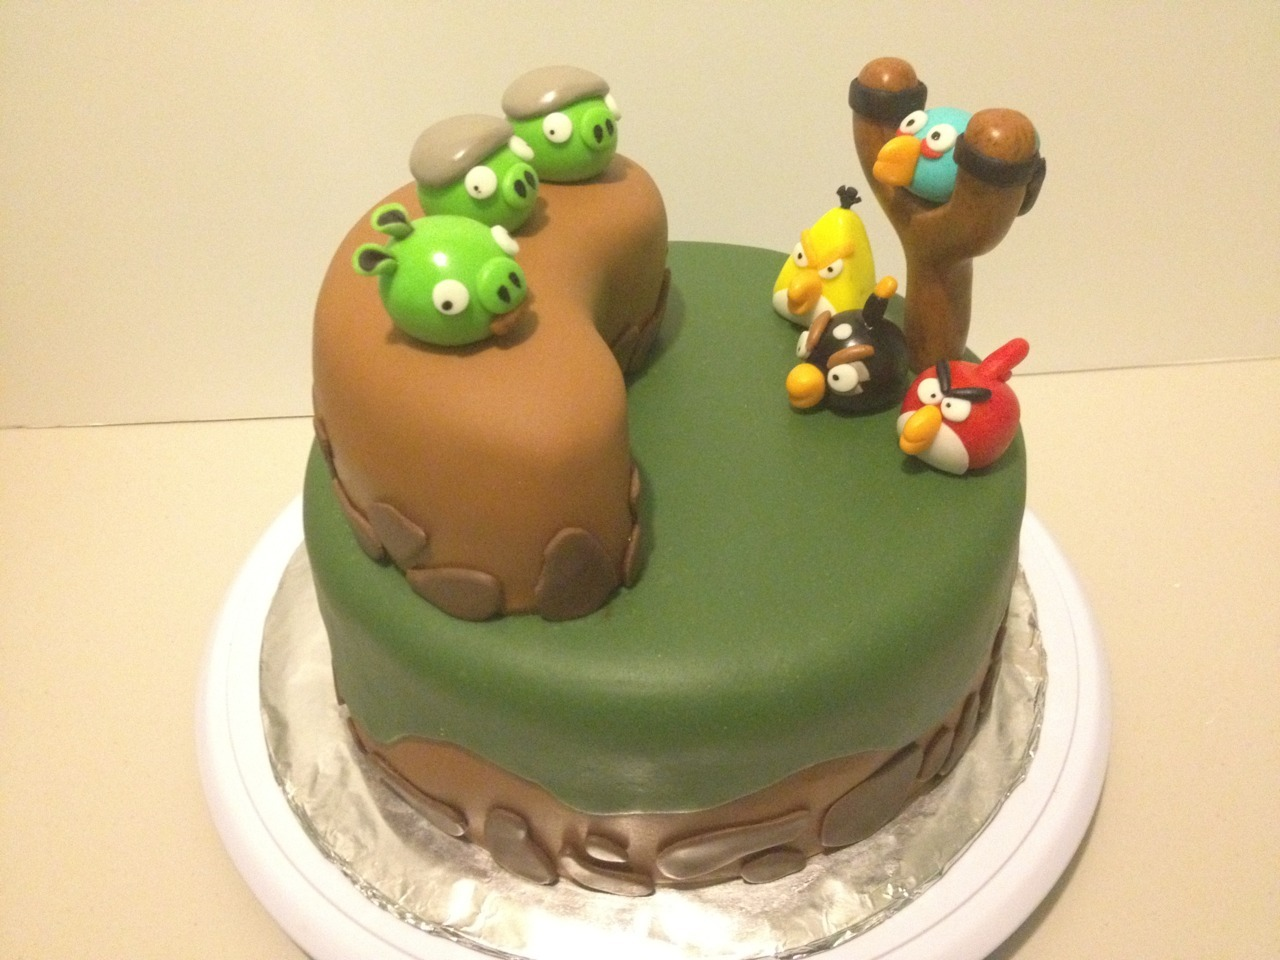 ANGRY BIRDS™ CAKE GIVEAWAY! Go to:http://www.rosecitycakes.com/angrybirds.html and fill out the form to enter.*Must be able to pick it up in the Portland, Oregon Area.***A WINNER will be selected on SUNDAY FEBRUARY 19, 2012 at NOON (12pm).**